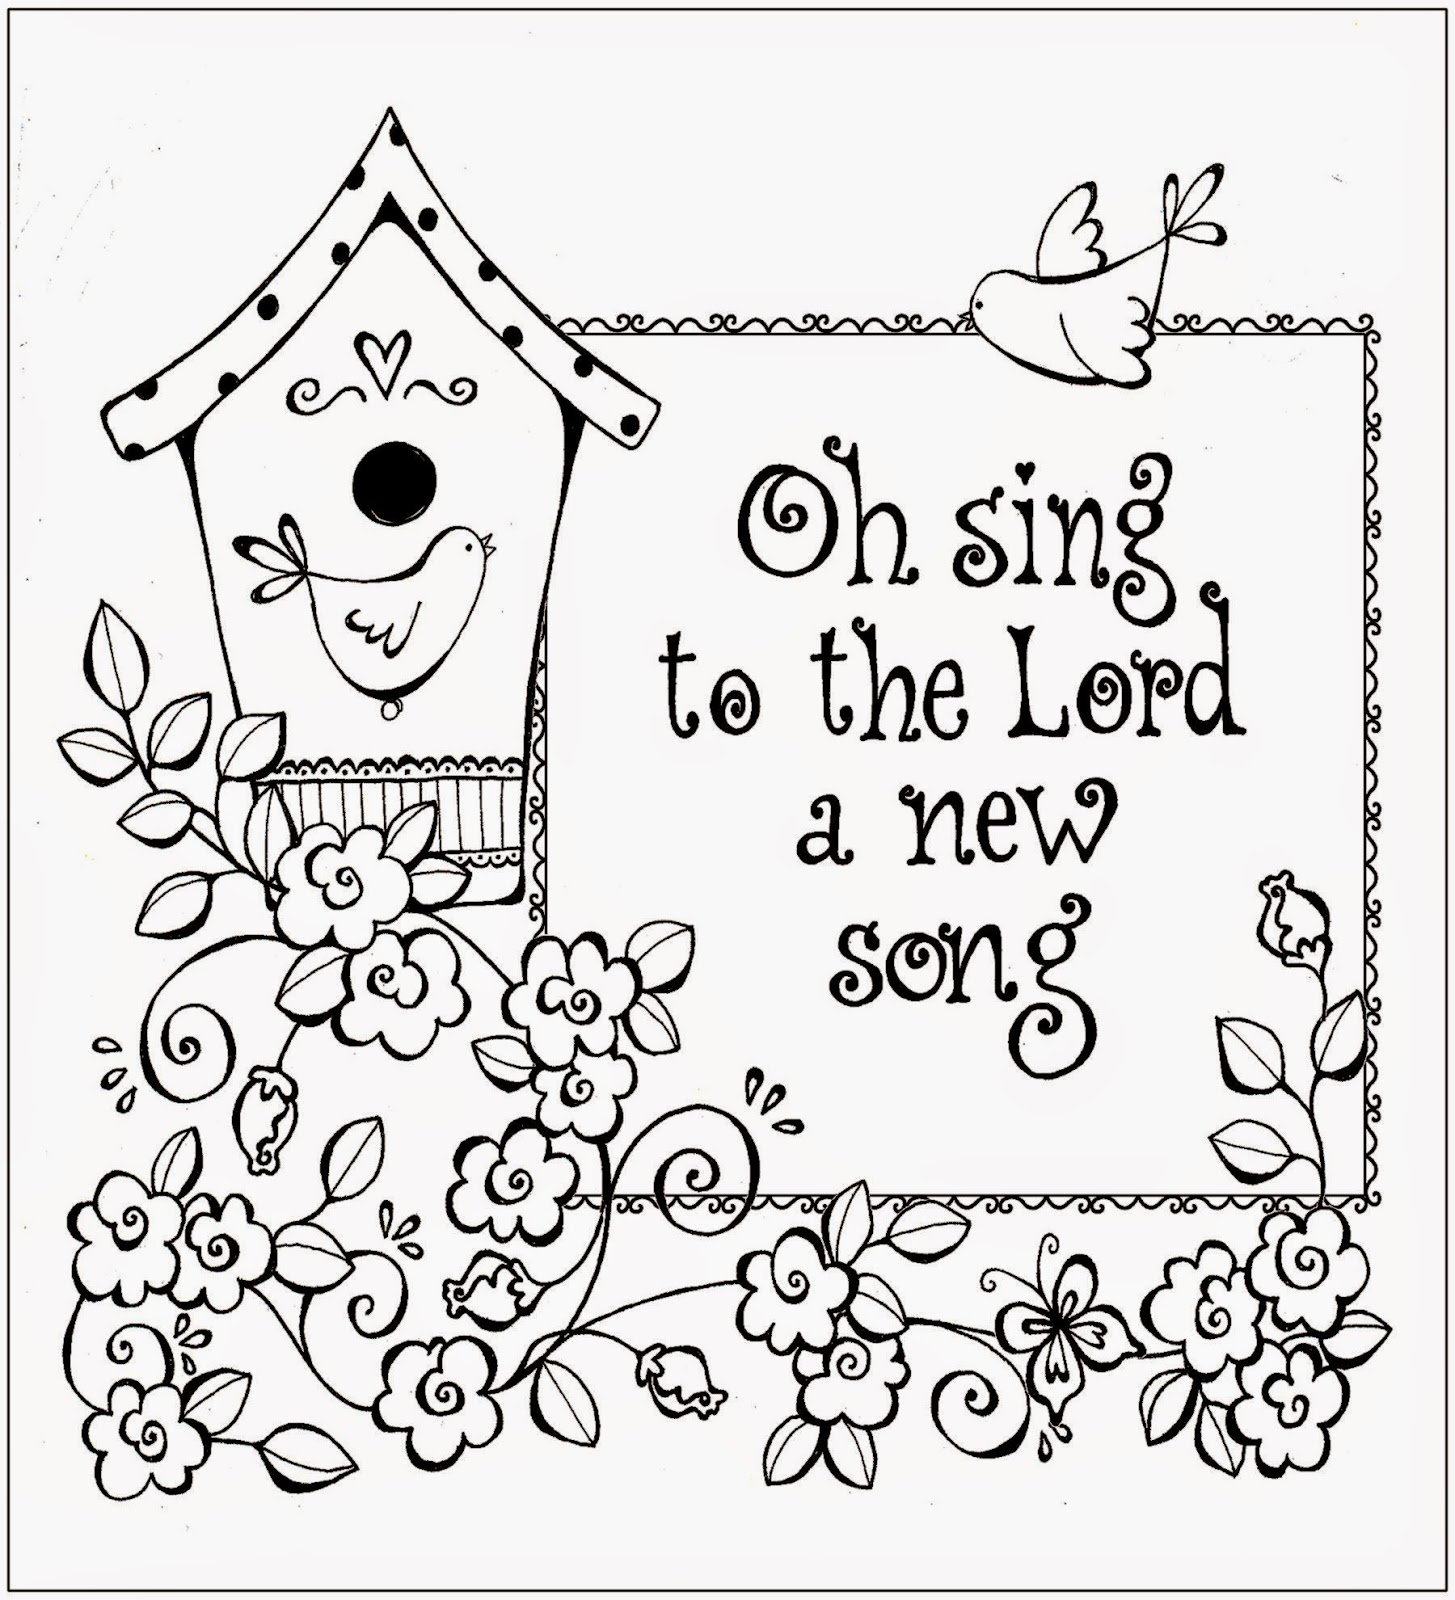 Coloring Pages Sunday School Coloring Pages Kids sunday school coloring pages kids eassume com eassume